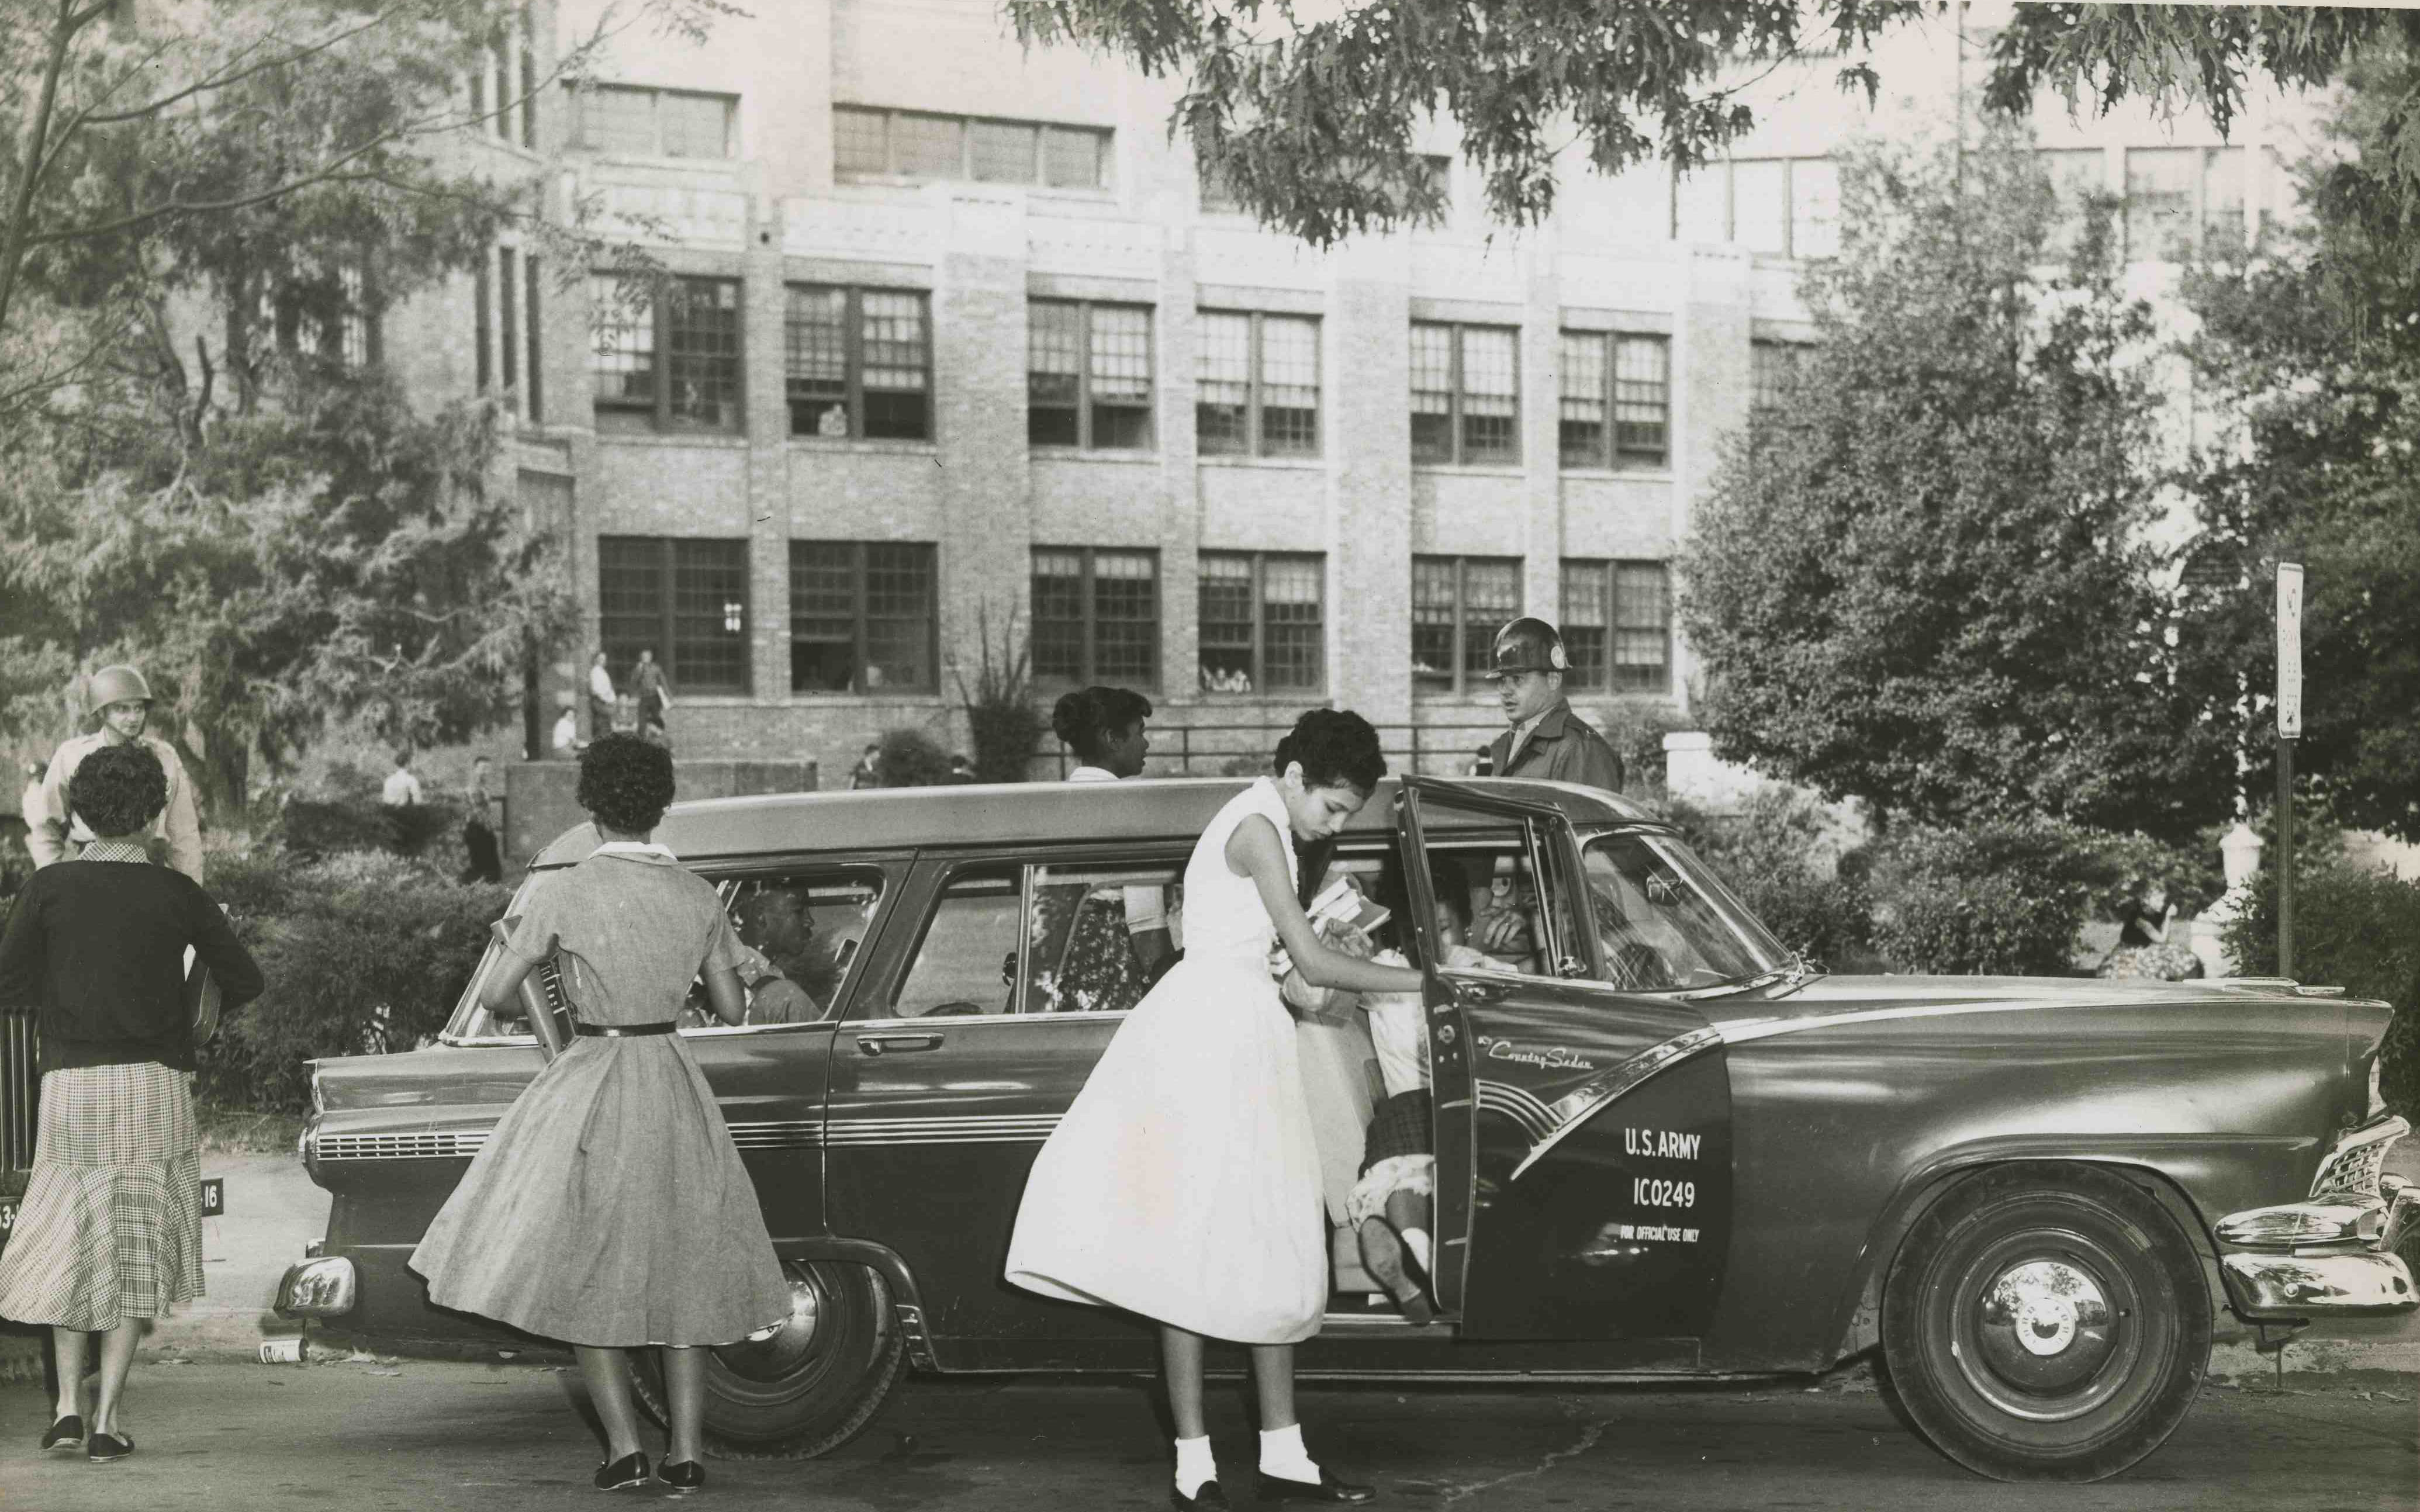 Honorees: Little Rock Nine and Central High